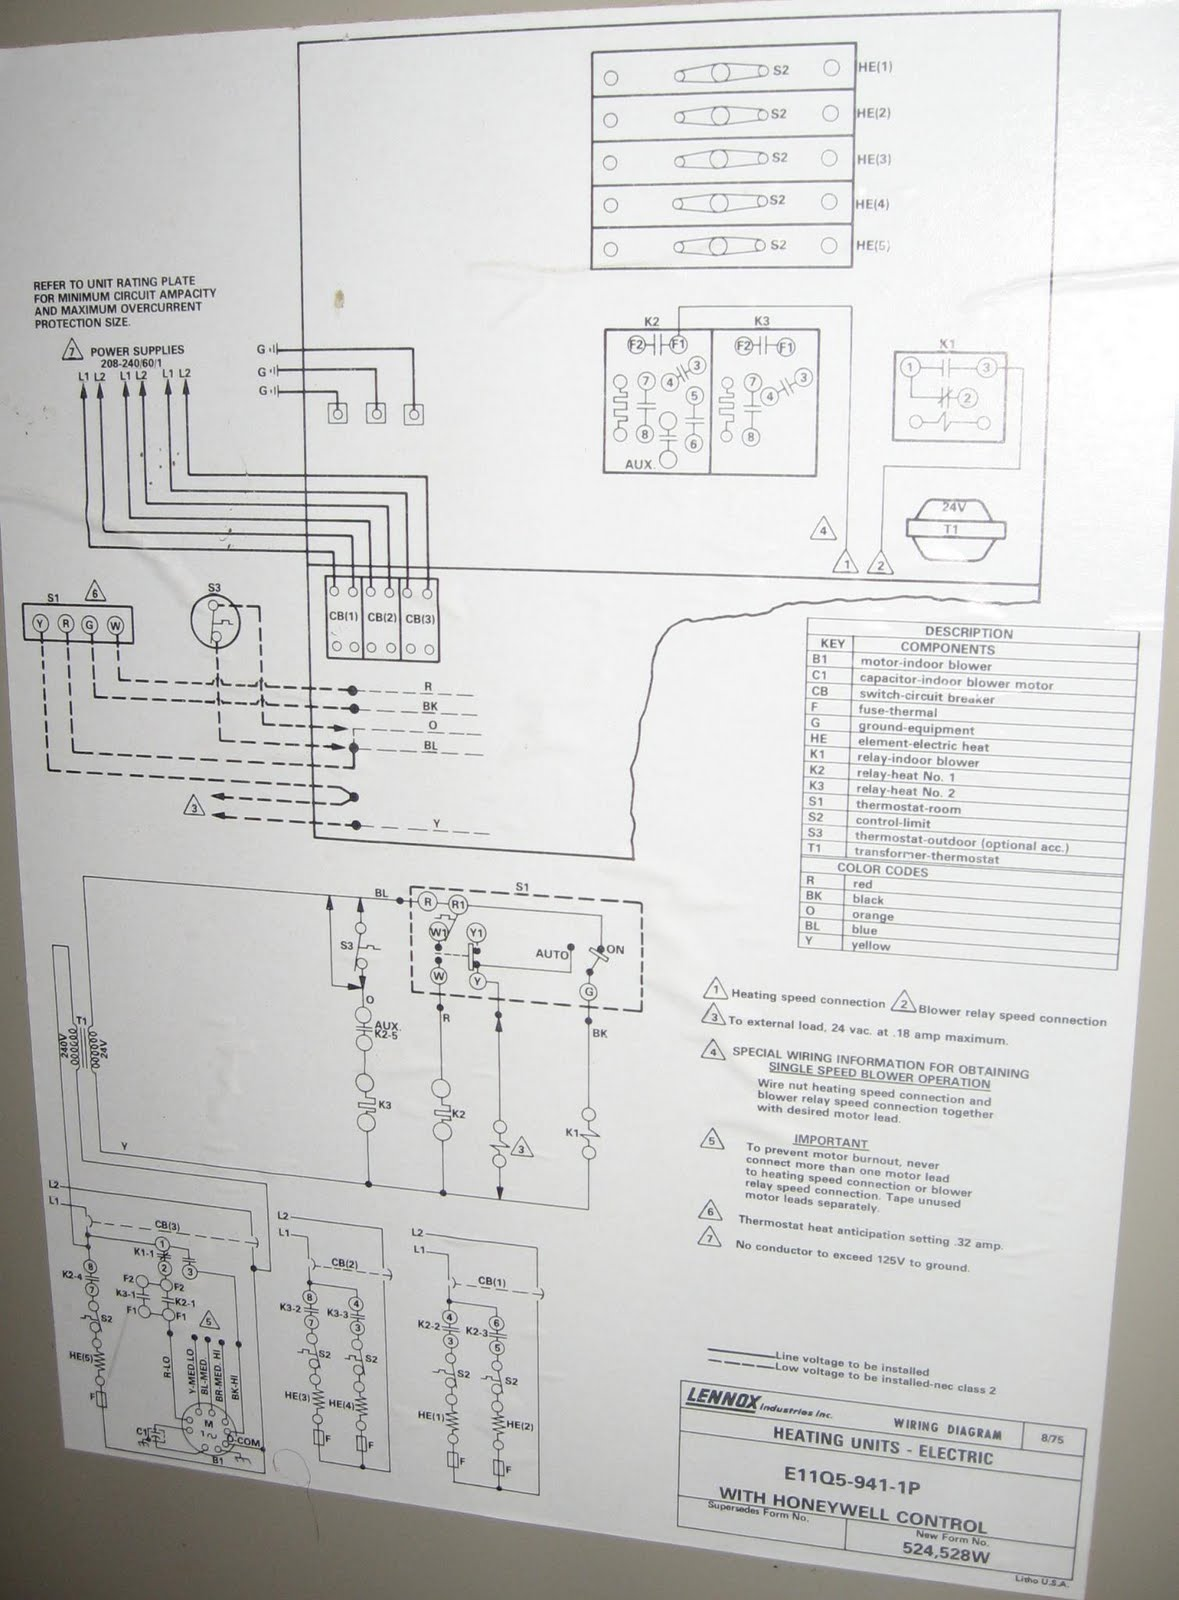 Lennox Wiring sustainability starts at home original electric furnace wiring diagram for lennox gas furnace at soozxer.org